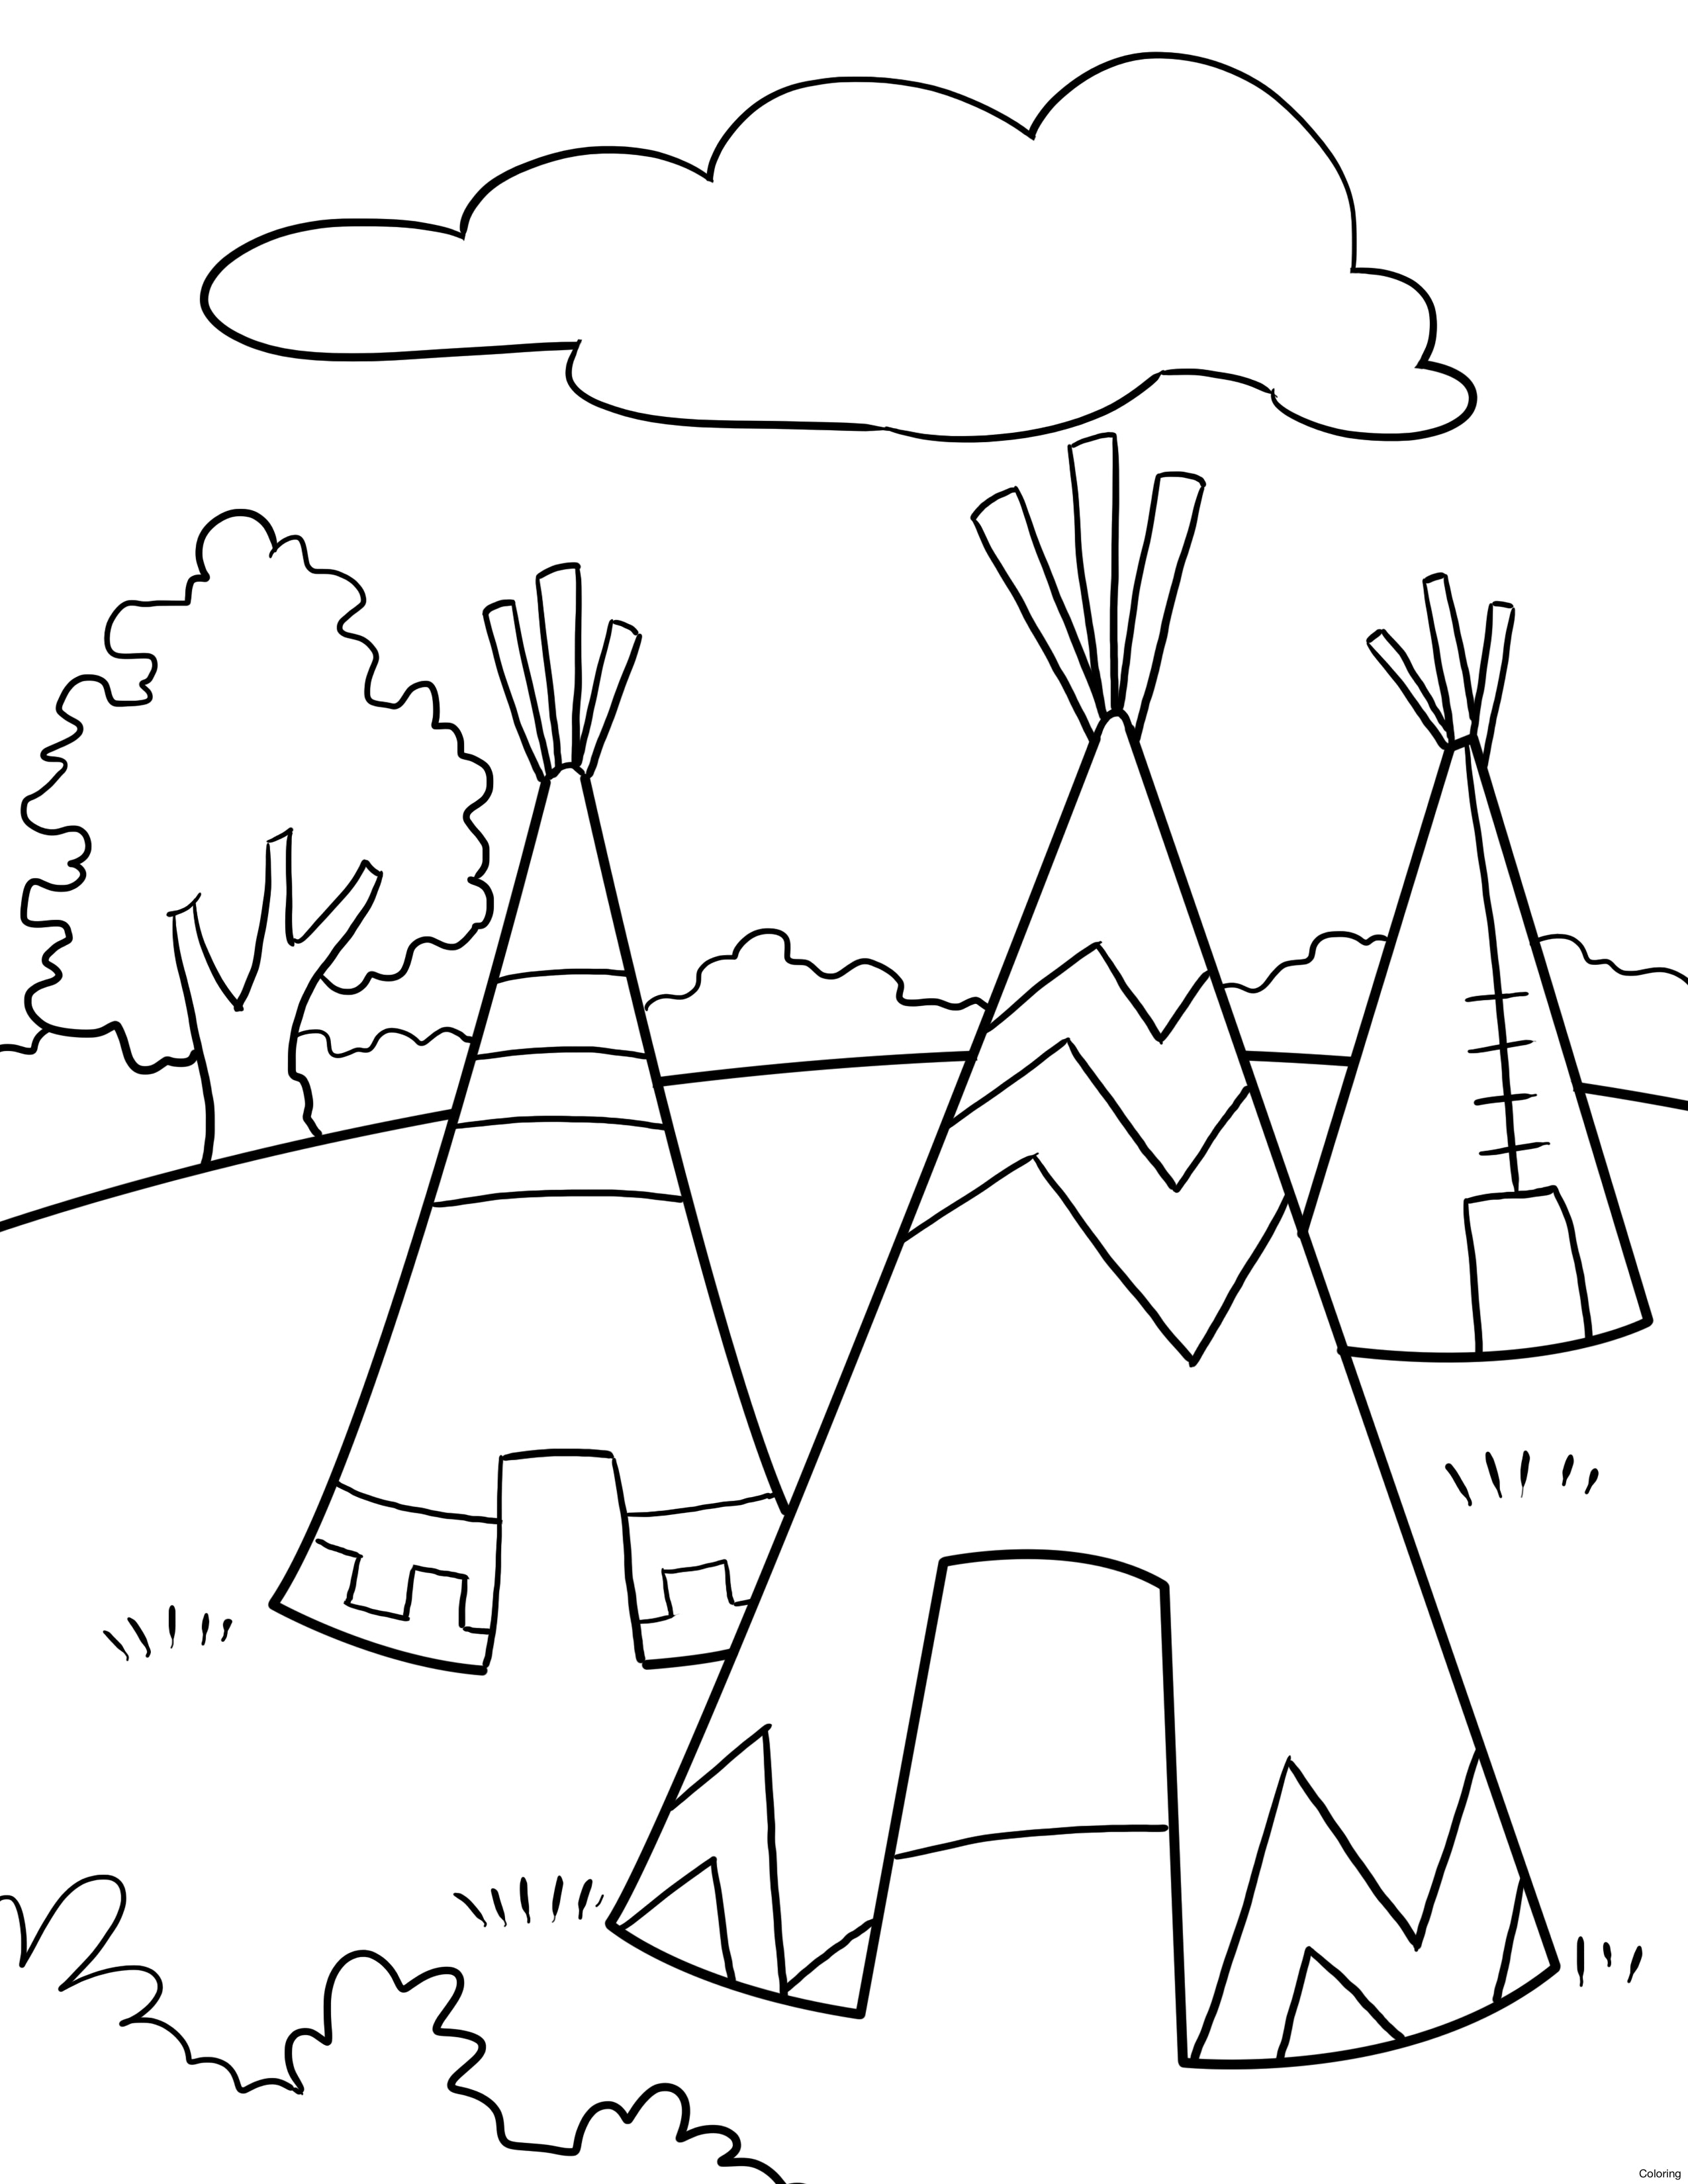 2550x3300 1451454245adult Native American Symbols Coloring Pages Adult 5f